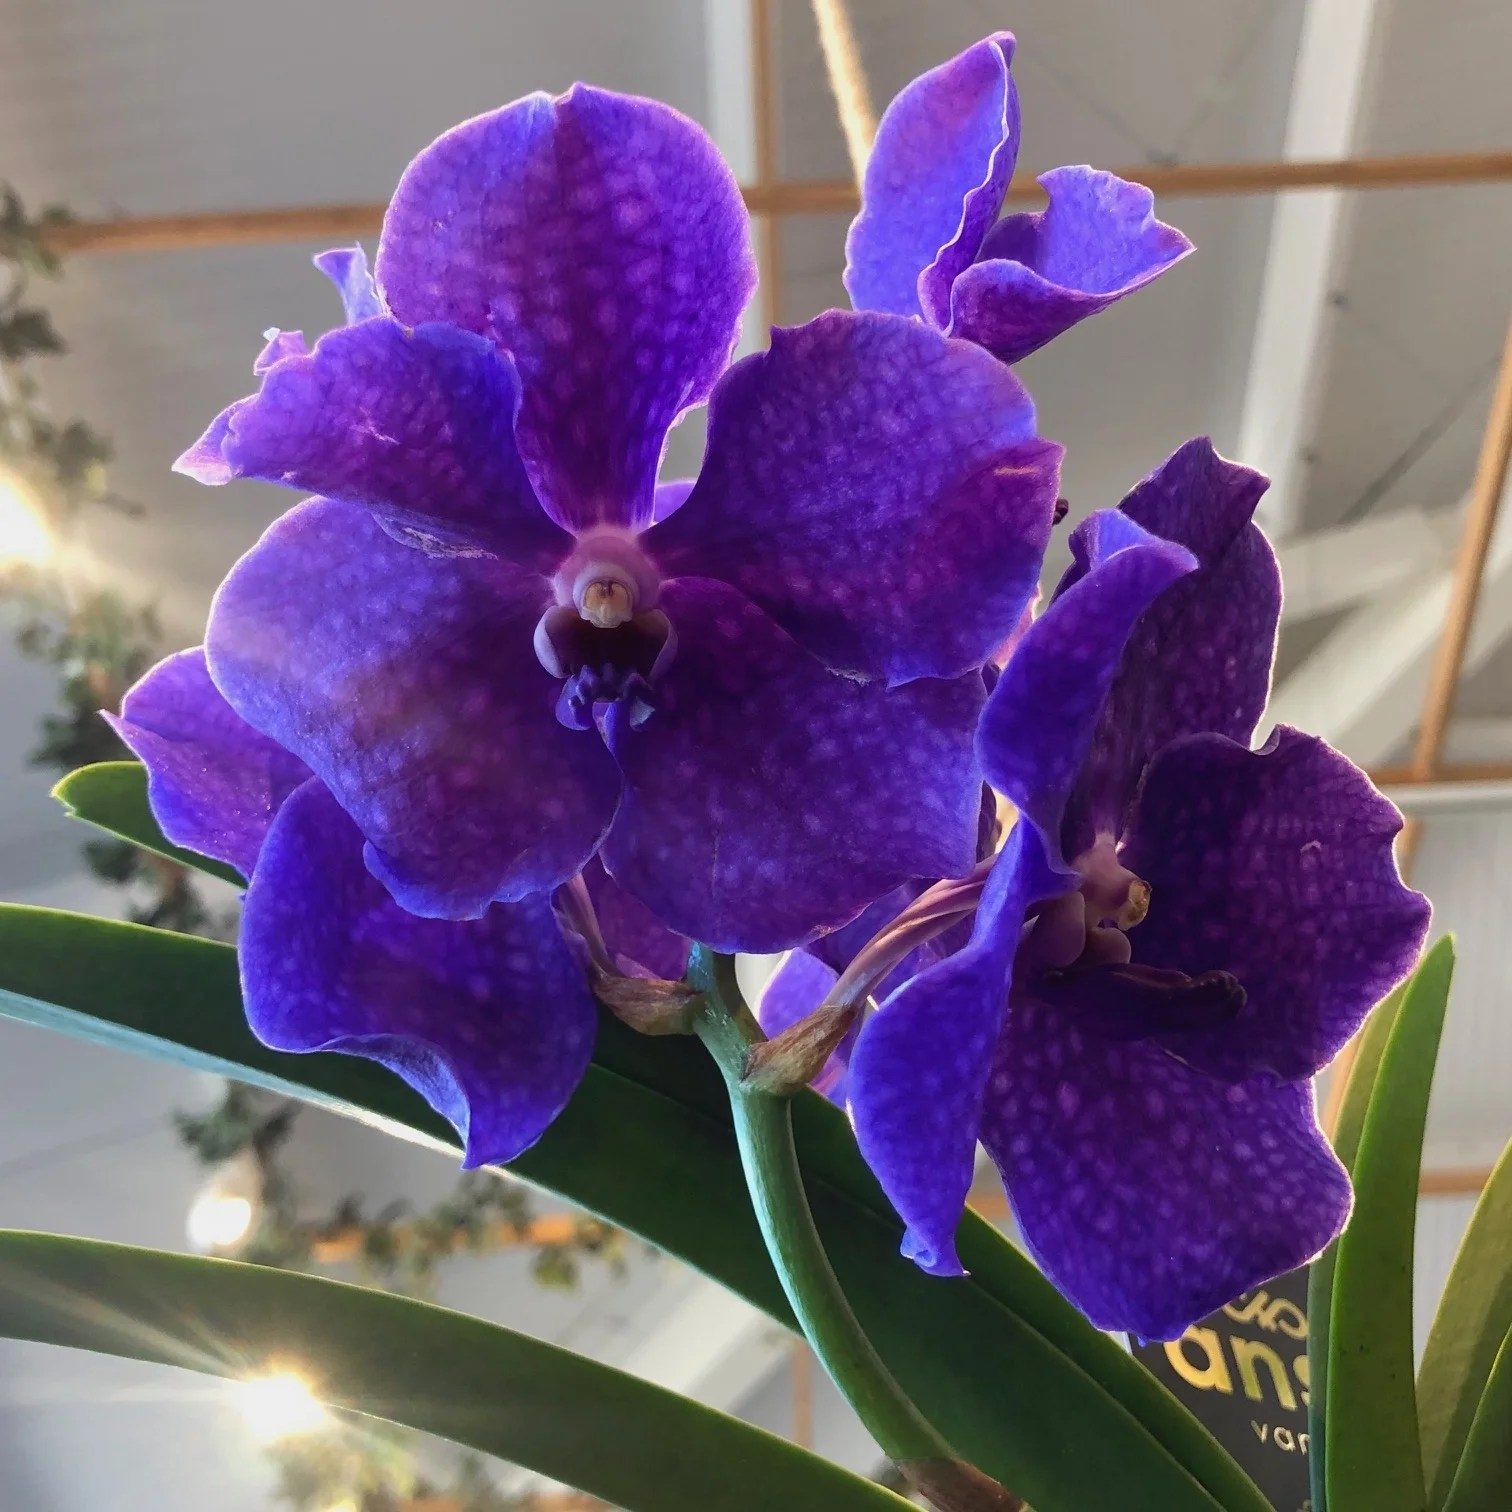 Our Top Tips For Vanda Orchids